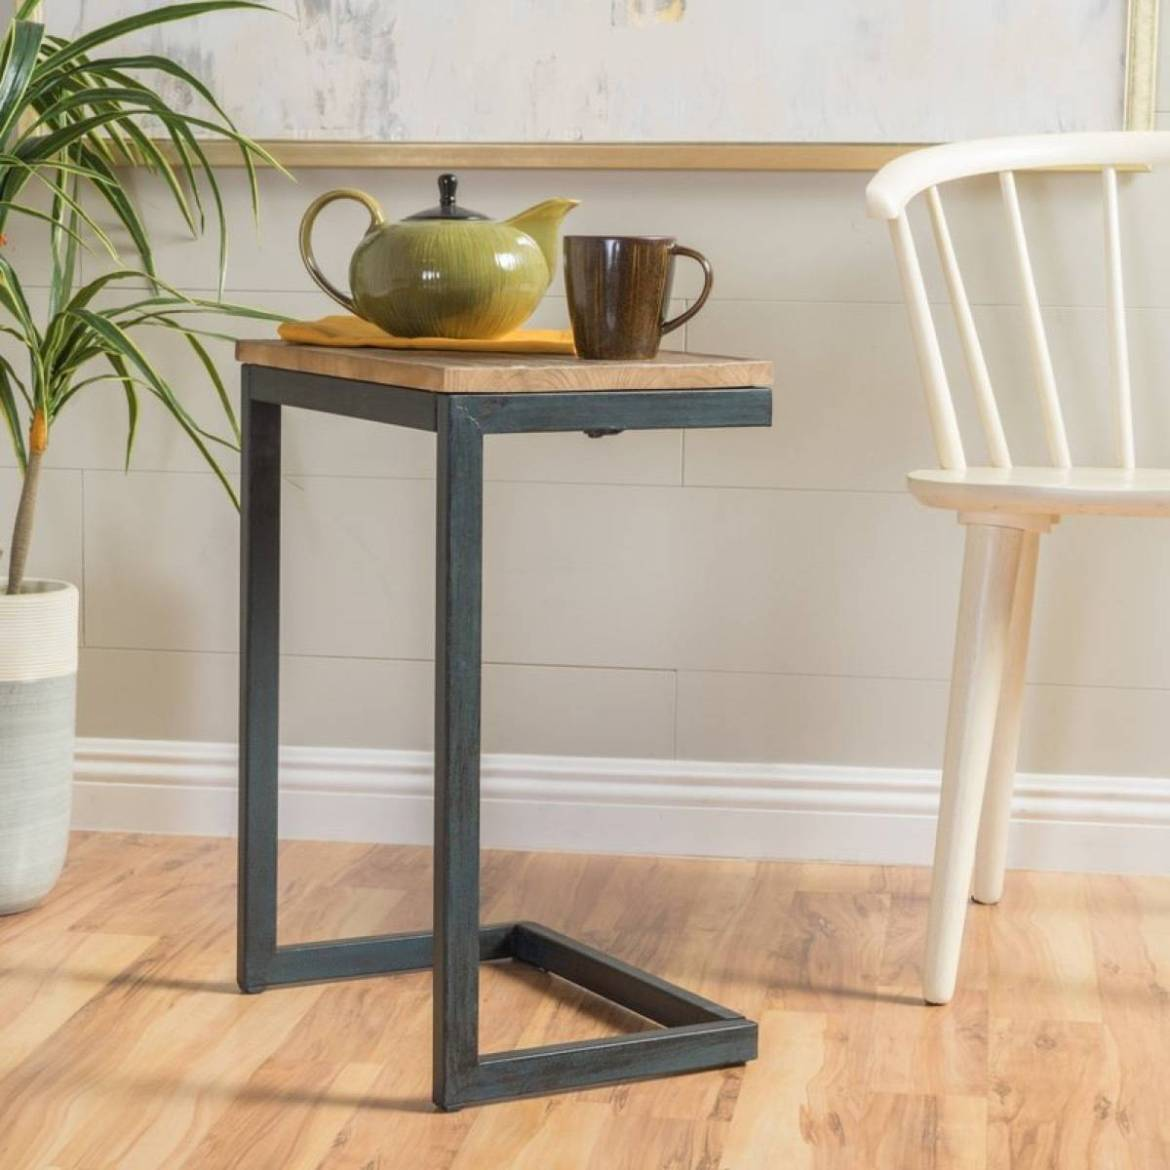 Antique end table from Wayfair